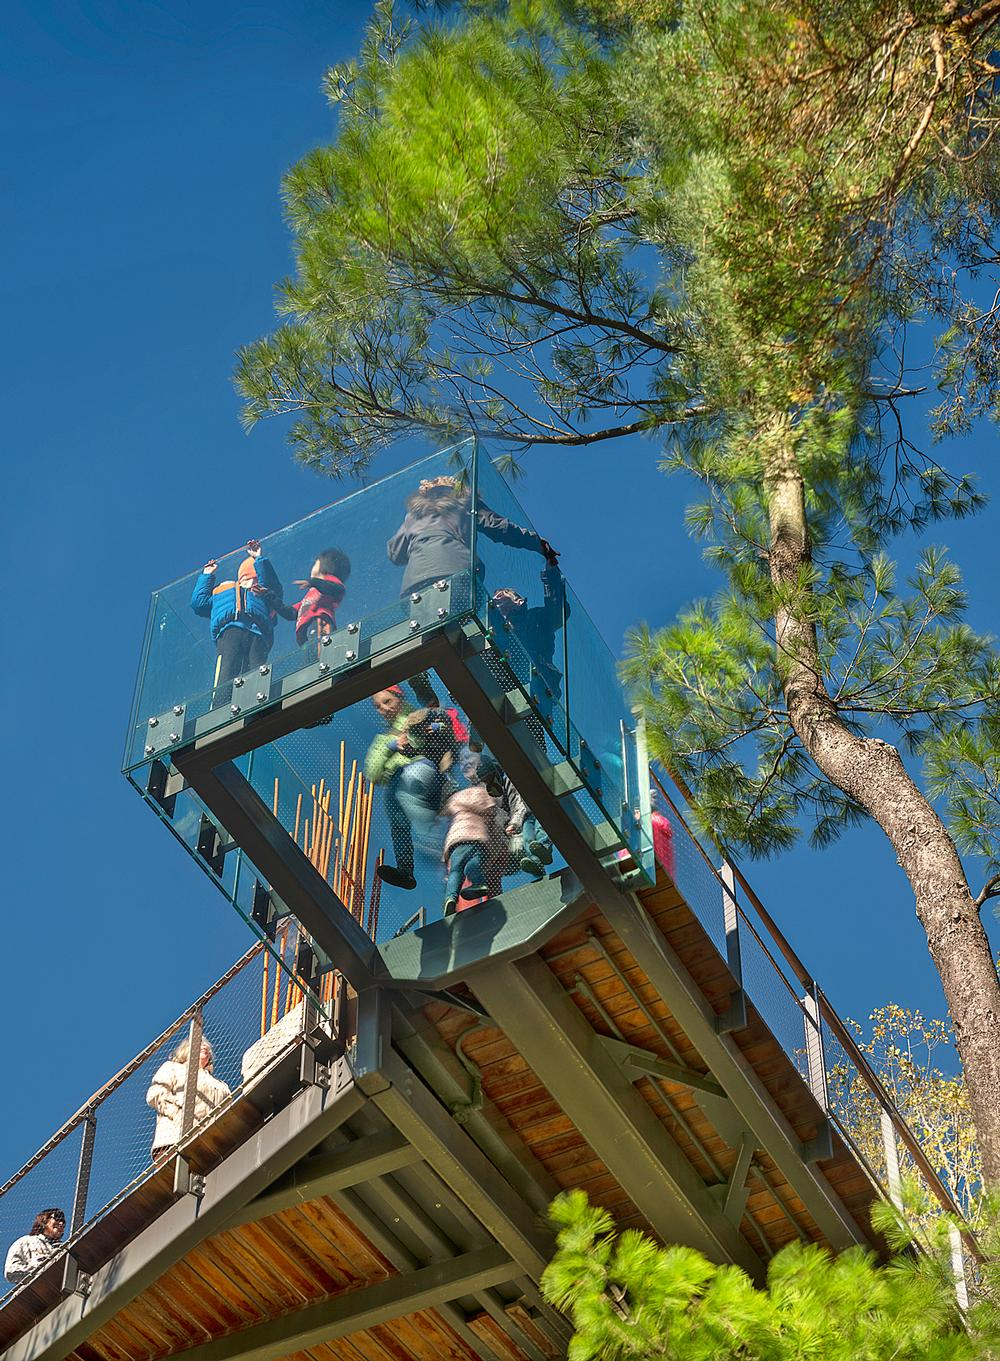 The orchard view platform has a glass floor and railings at 40ft-high